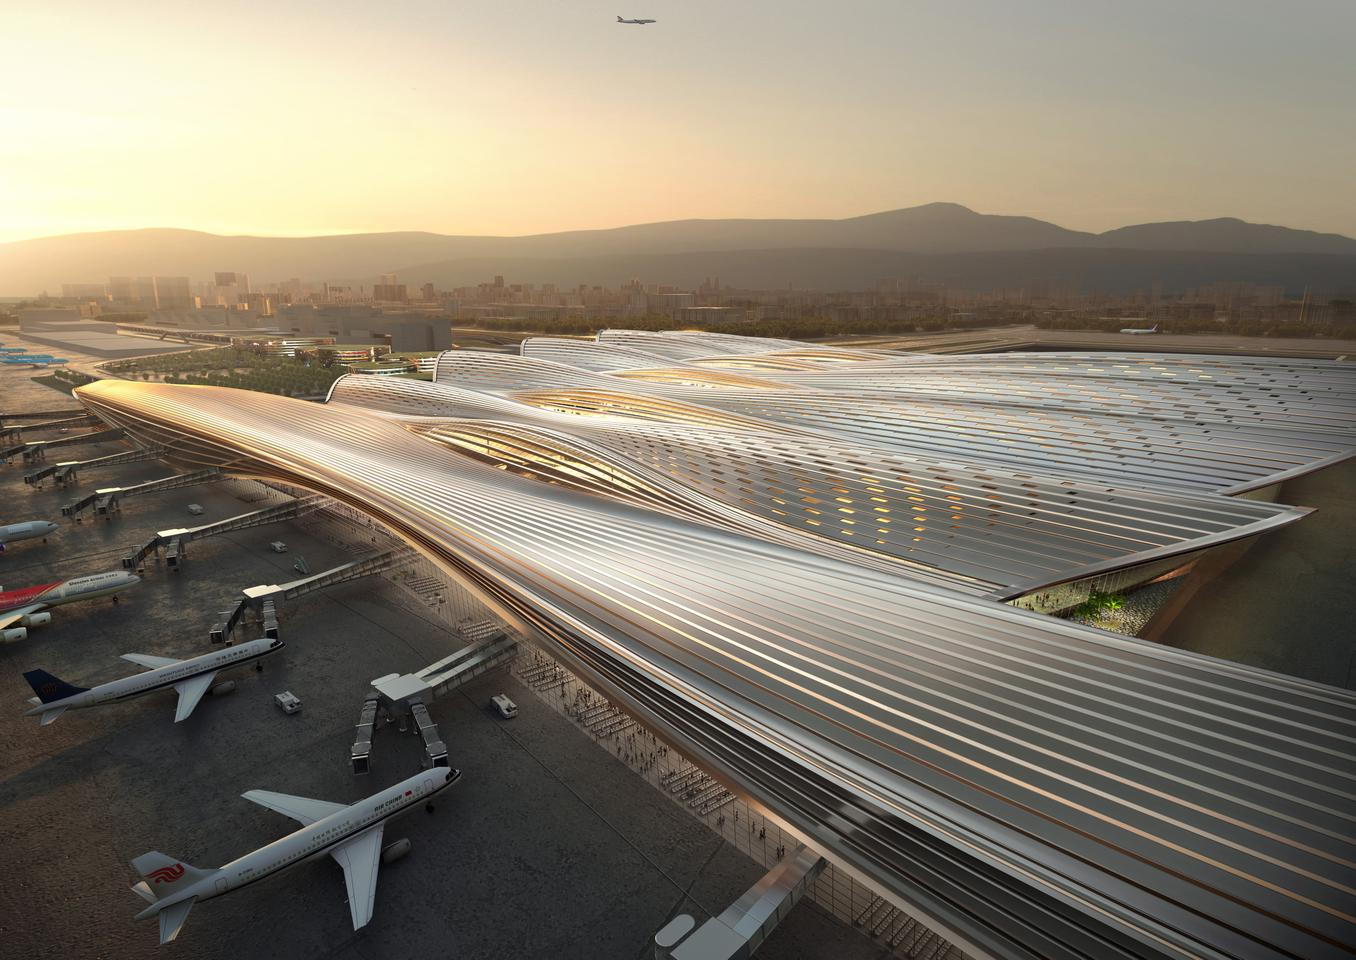 Shenzhen Bao'an International Airport Terminal 4 will measure 400,000 sq m (roughly 4.3 million sq ft) and serve up to 31 million passengers a year